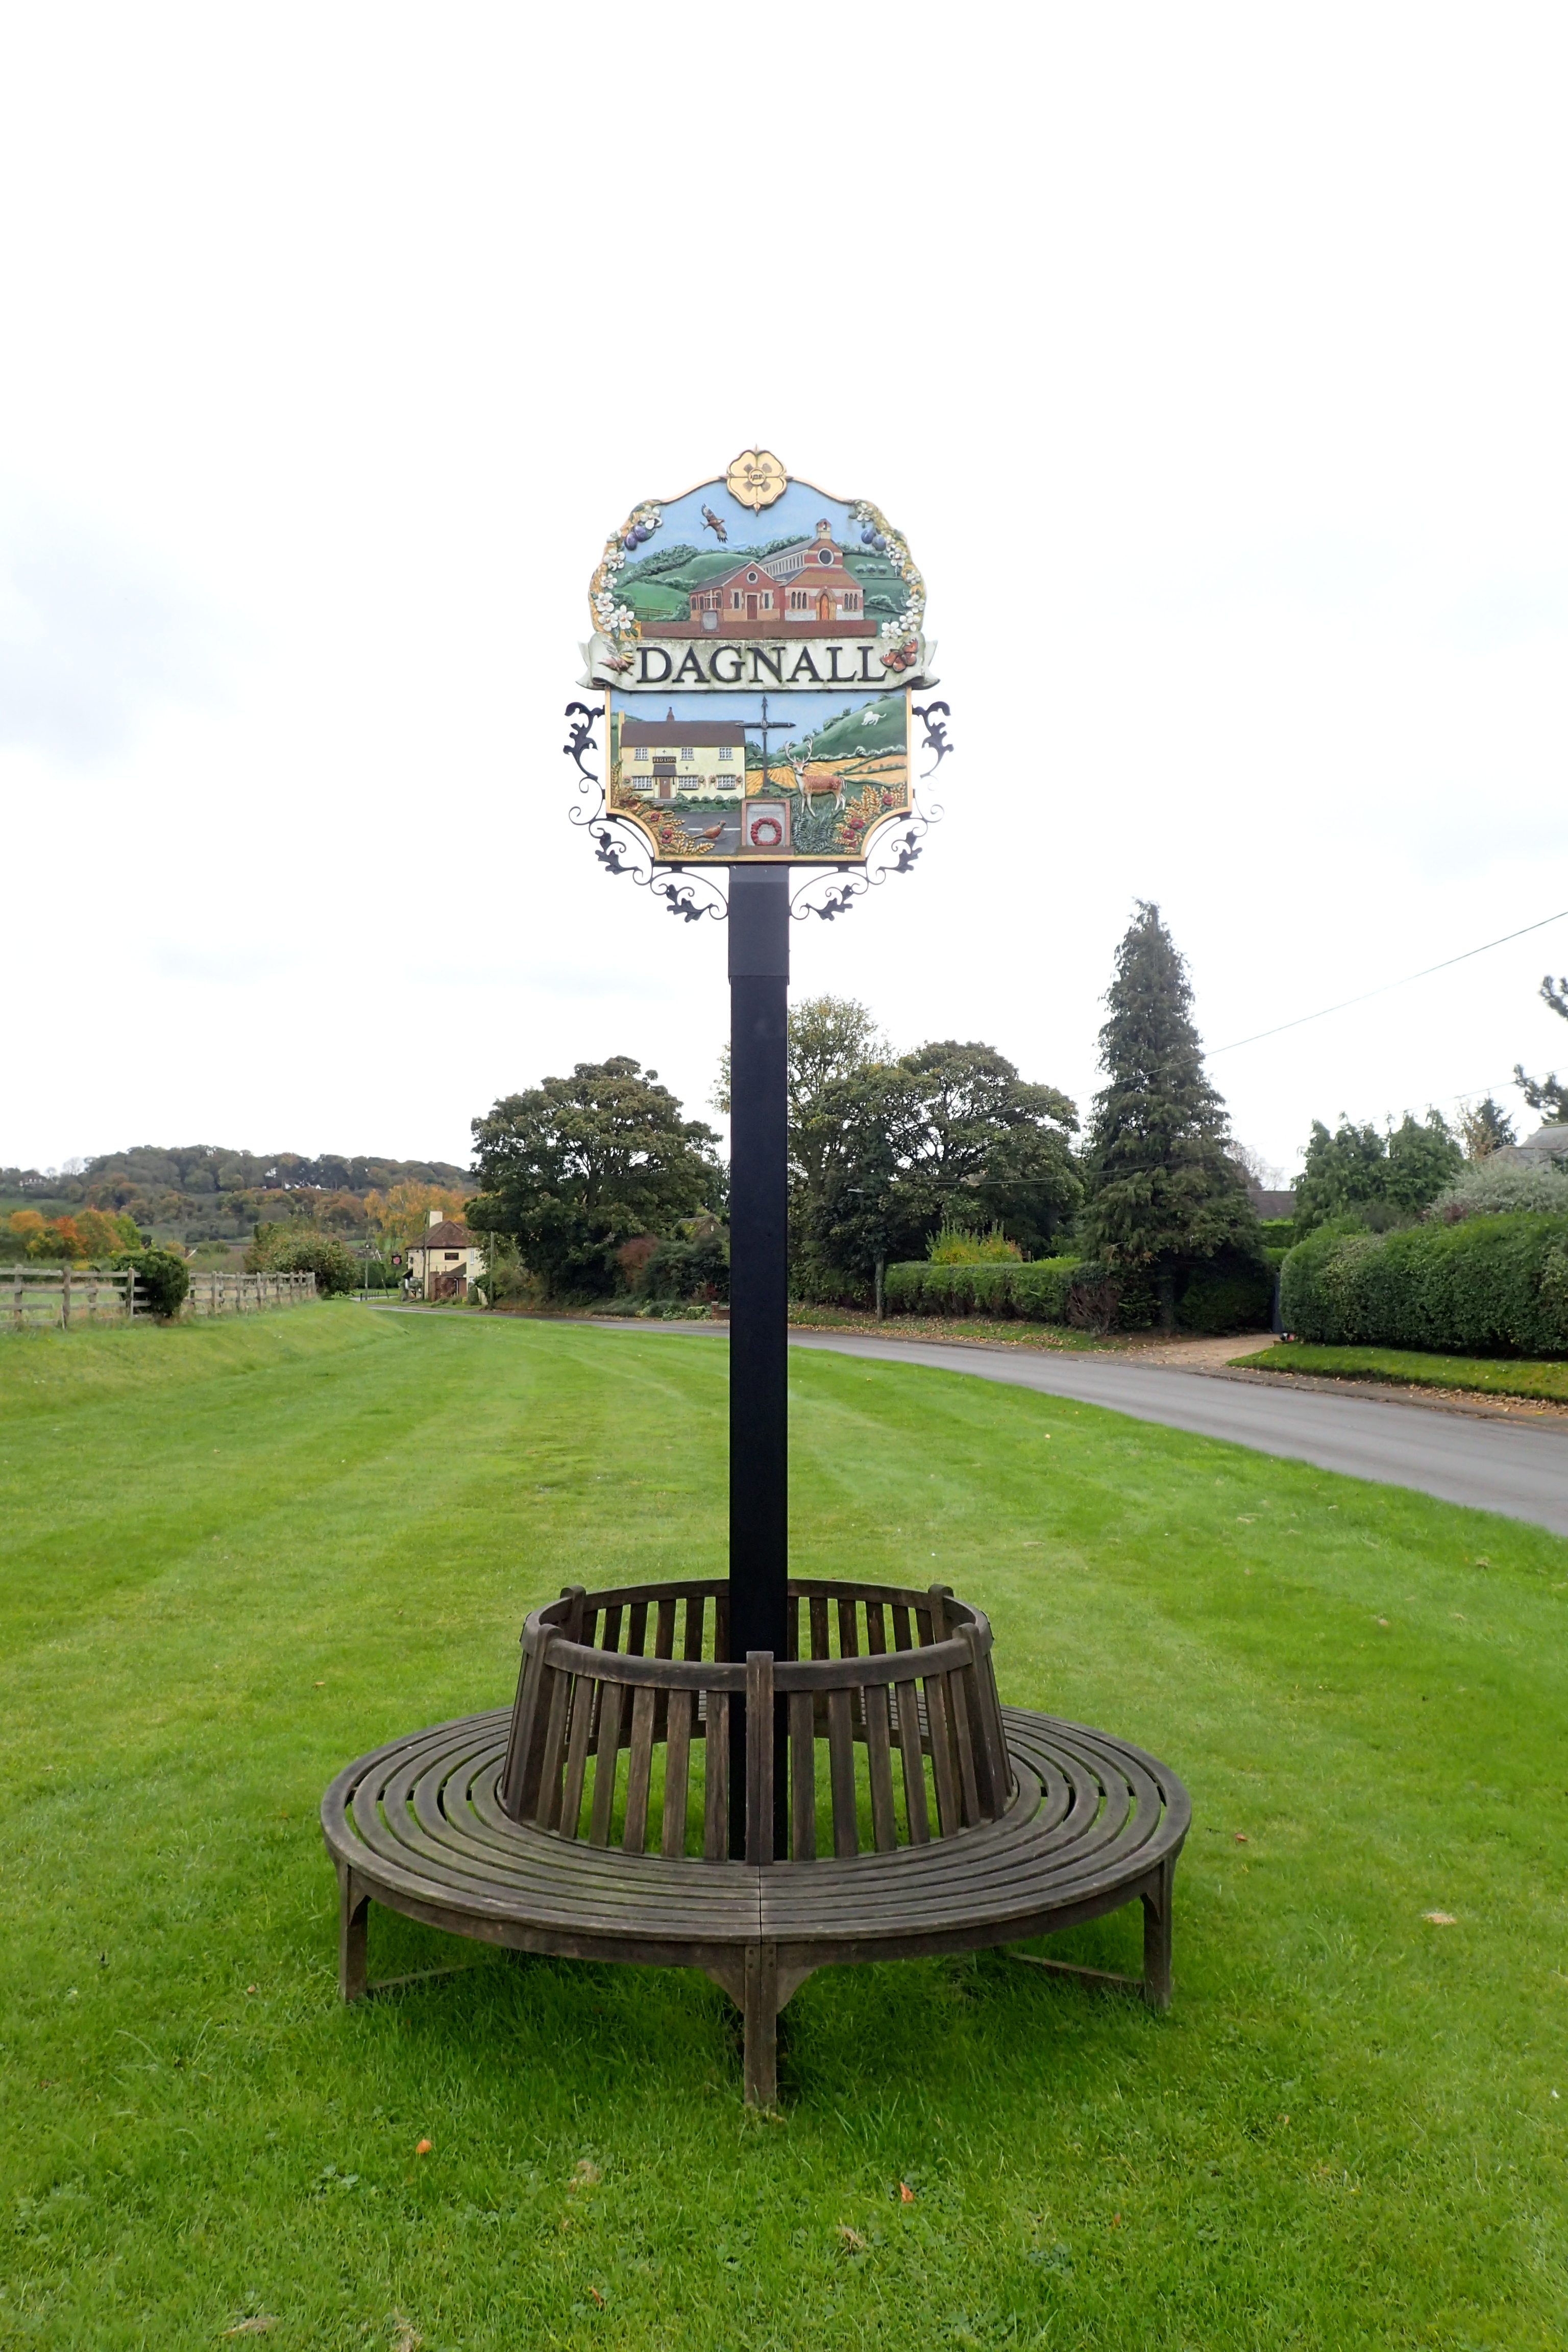 Glass Reinforced Plastic sign at Dagnall. Passed on the Icknield Way